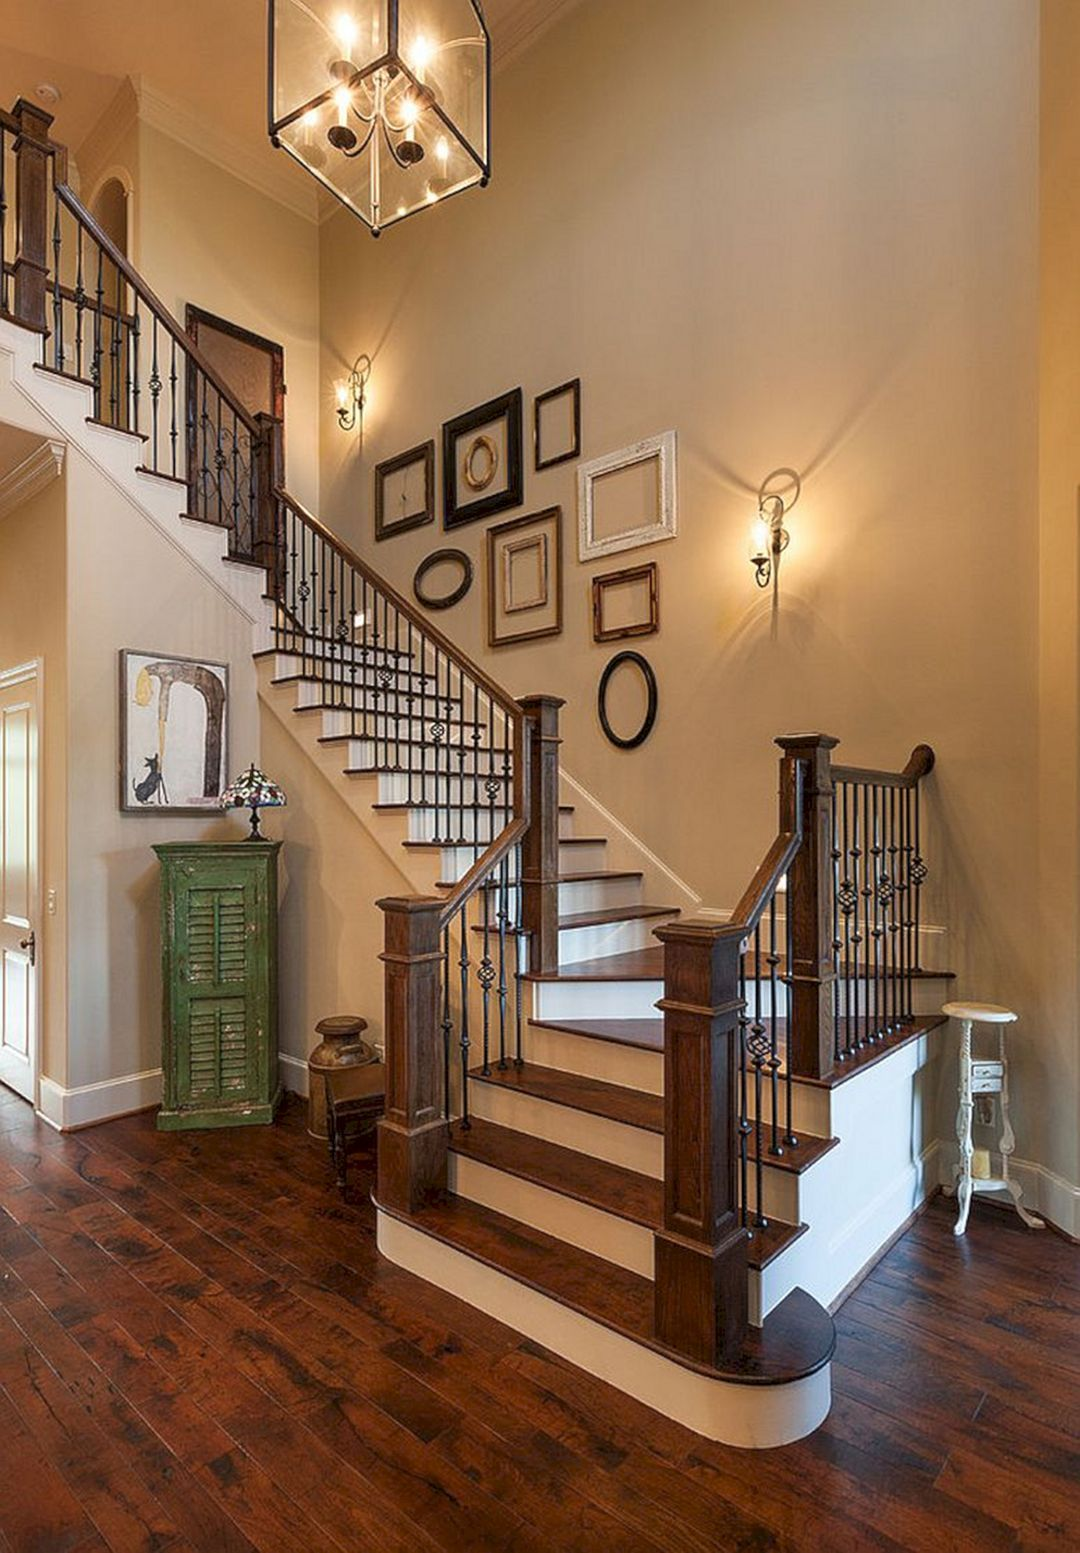 Best 65 Awesome Arranging Pictures On A Stair Wall Ideas 400 x 300